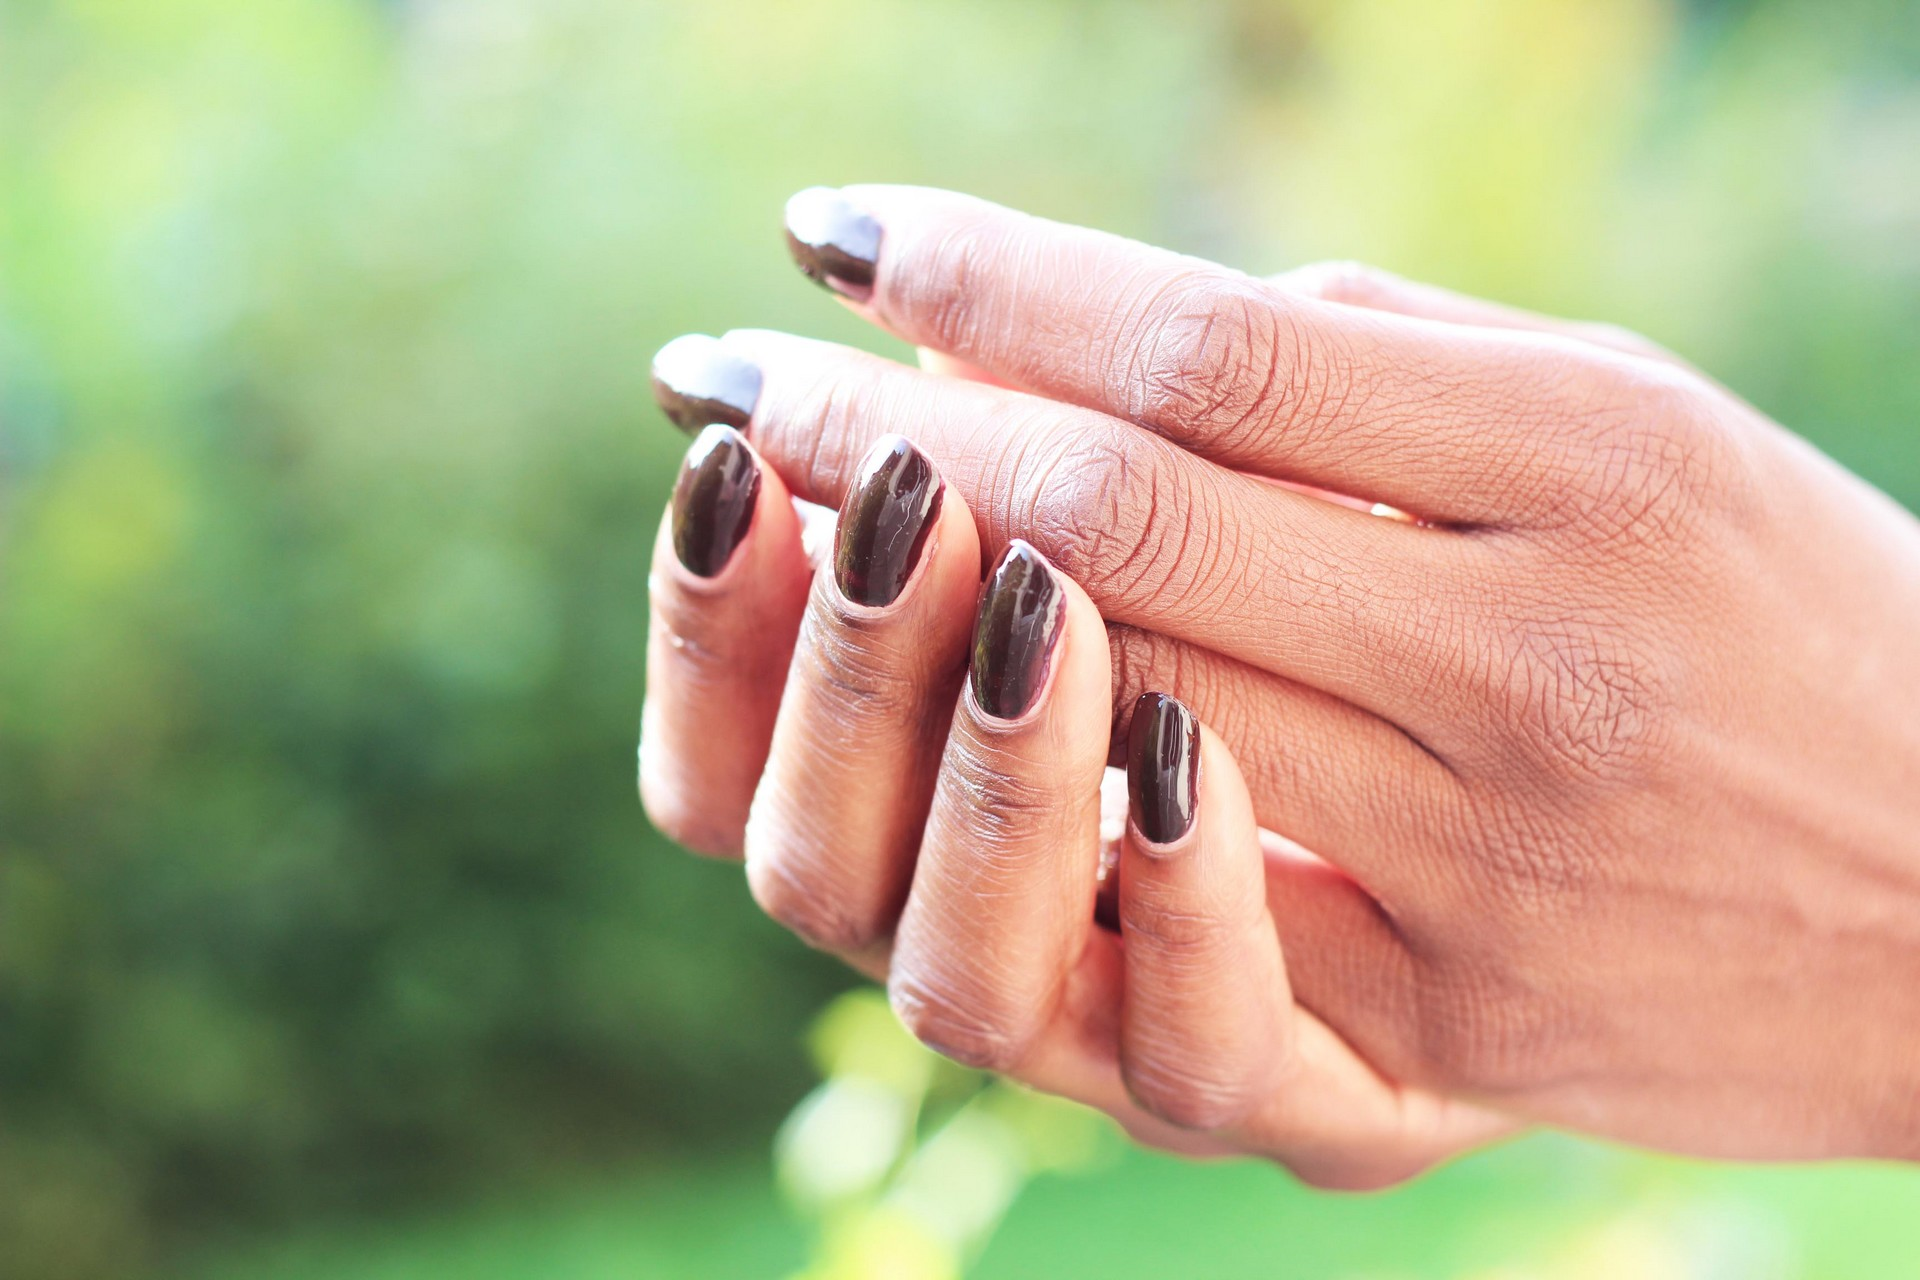 nunaavane-fall-nails-darkbrown-nailvarnish-autumn-inspired-ctbb4